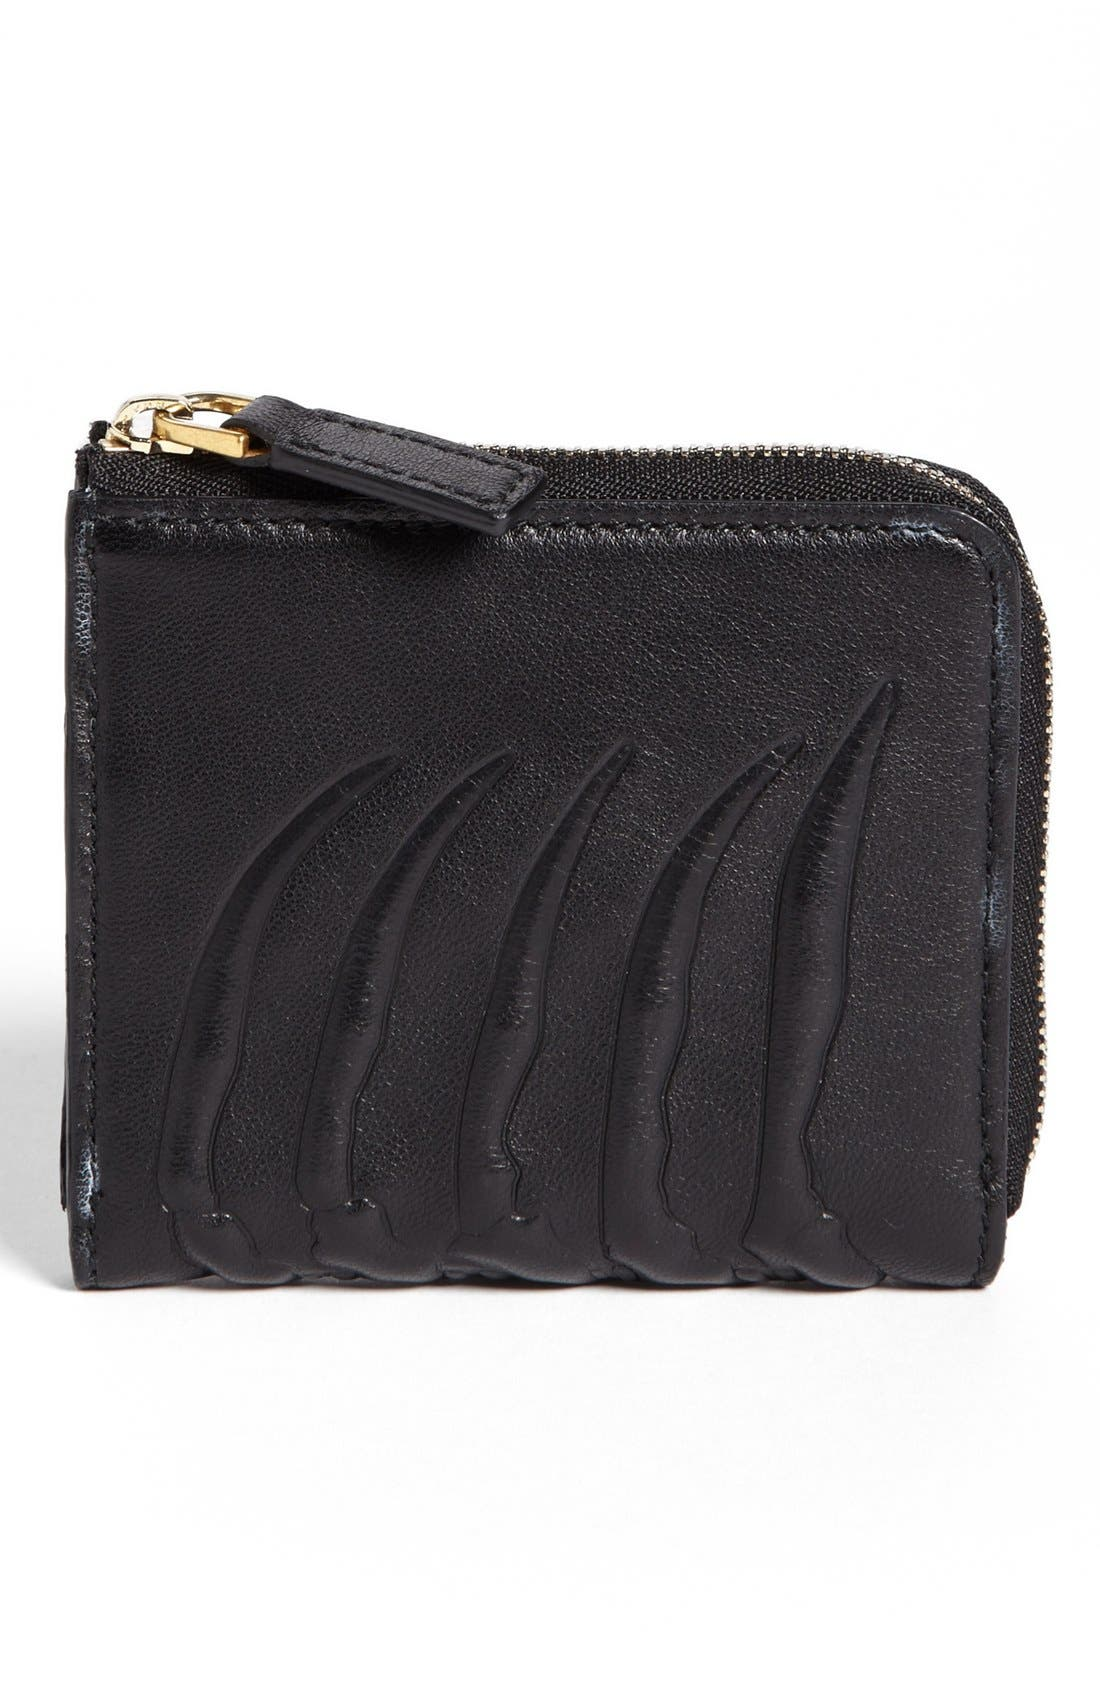 ALEXANDER MCQUEEN Rib Cage Leather Half Zip Wallet